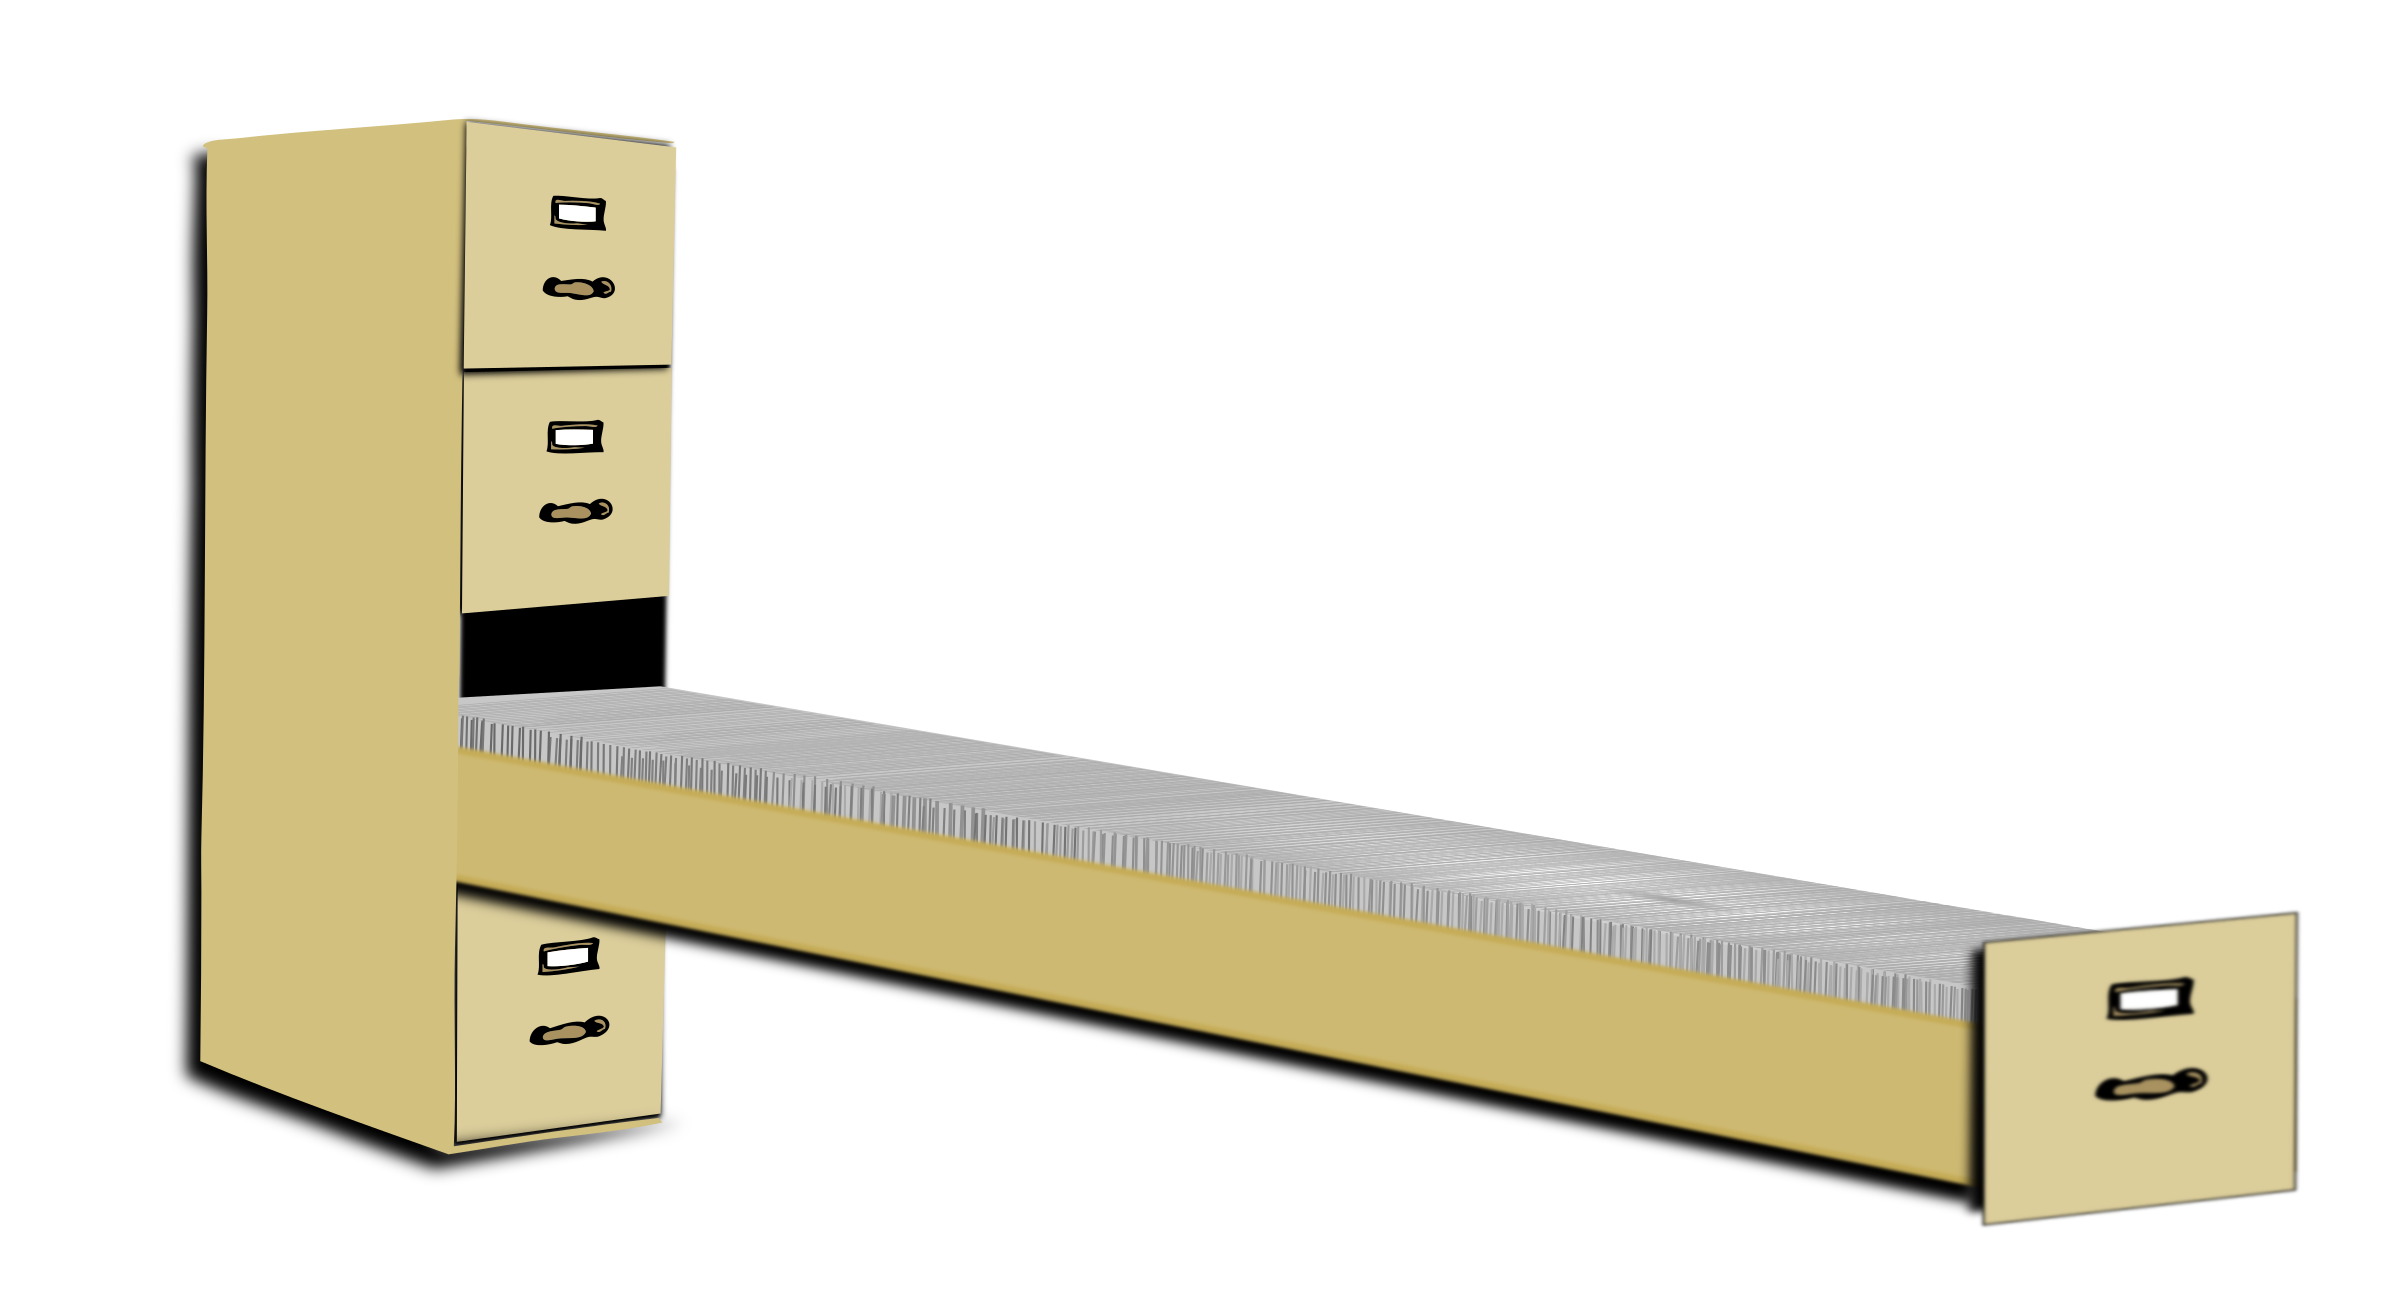 2400x1306 Clipart Of A Filing Cabinet